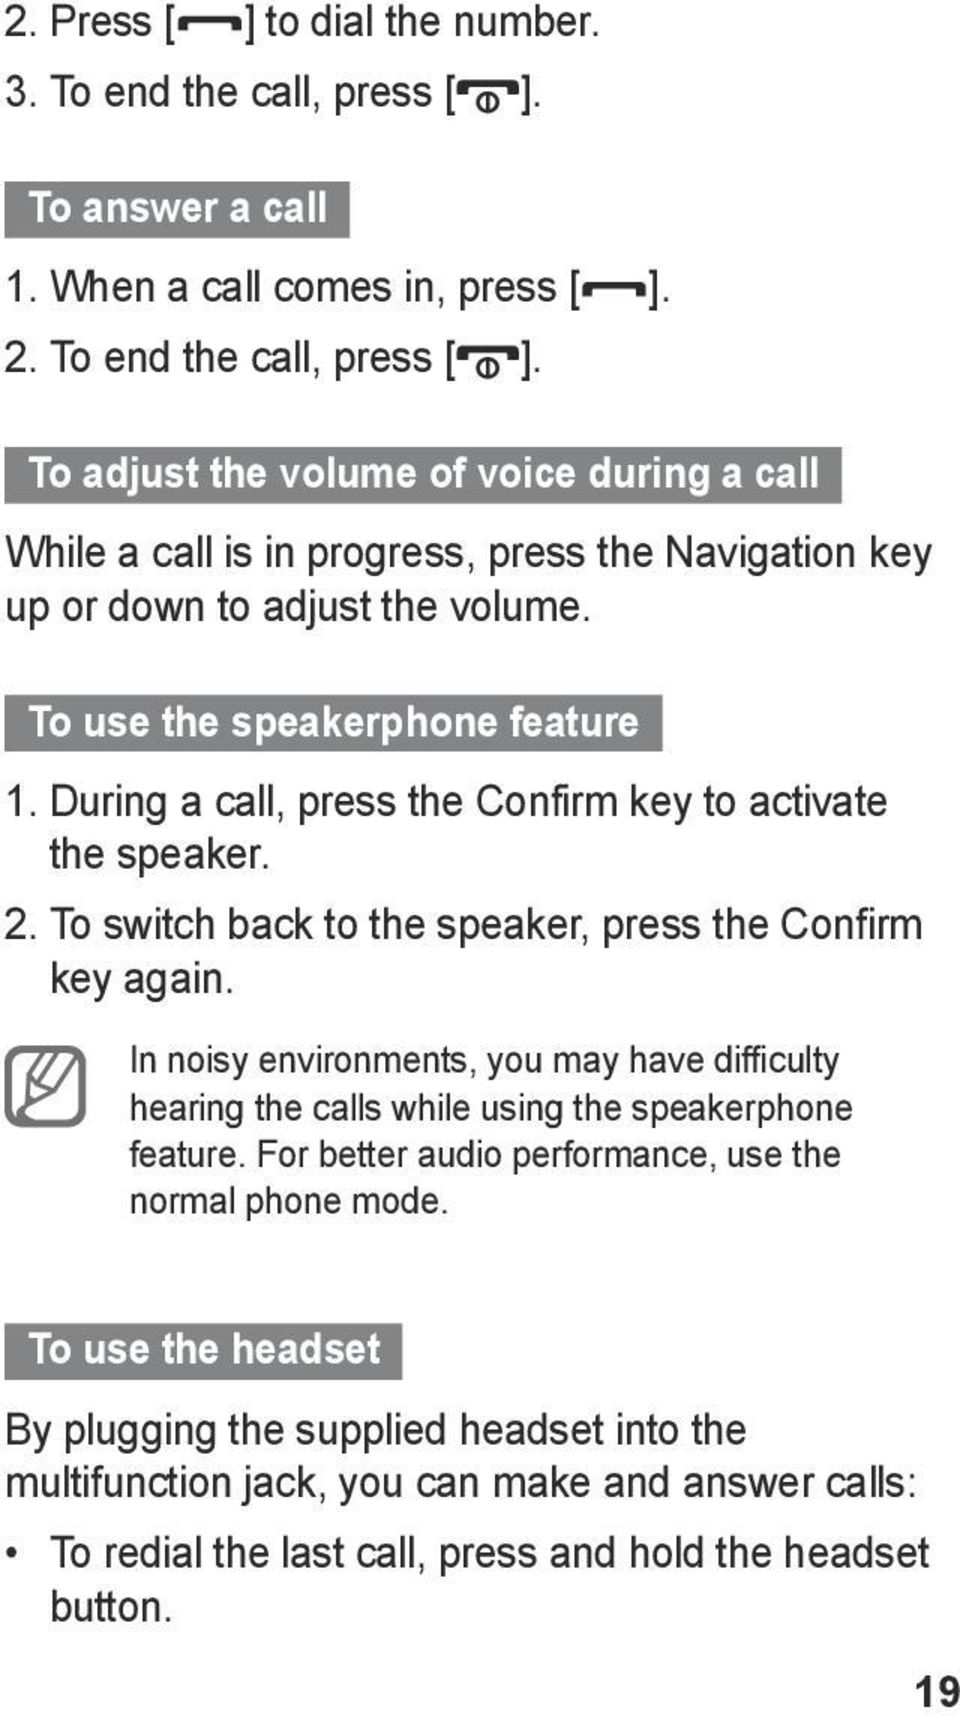 In noisy environments, you may have difficulty hearing the calls while using the speakerphone feature. For better audio performance, use the normal phone mode.